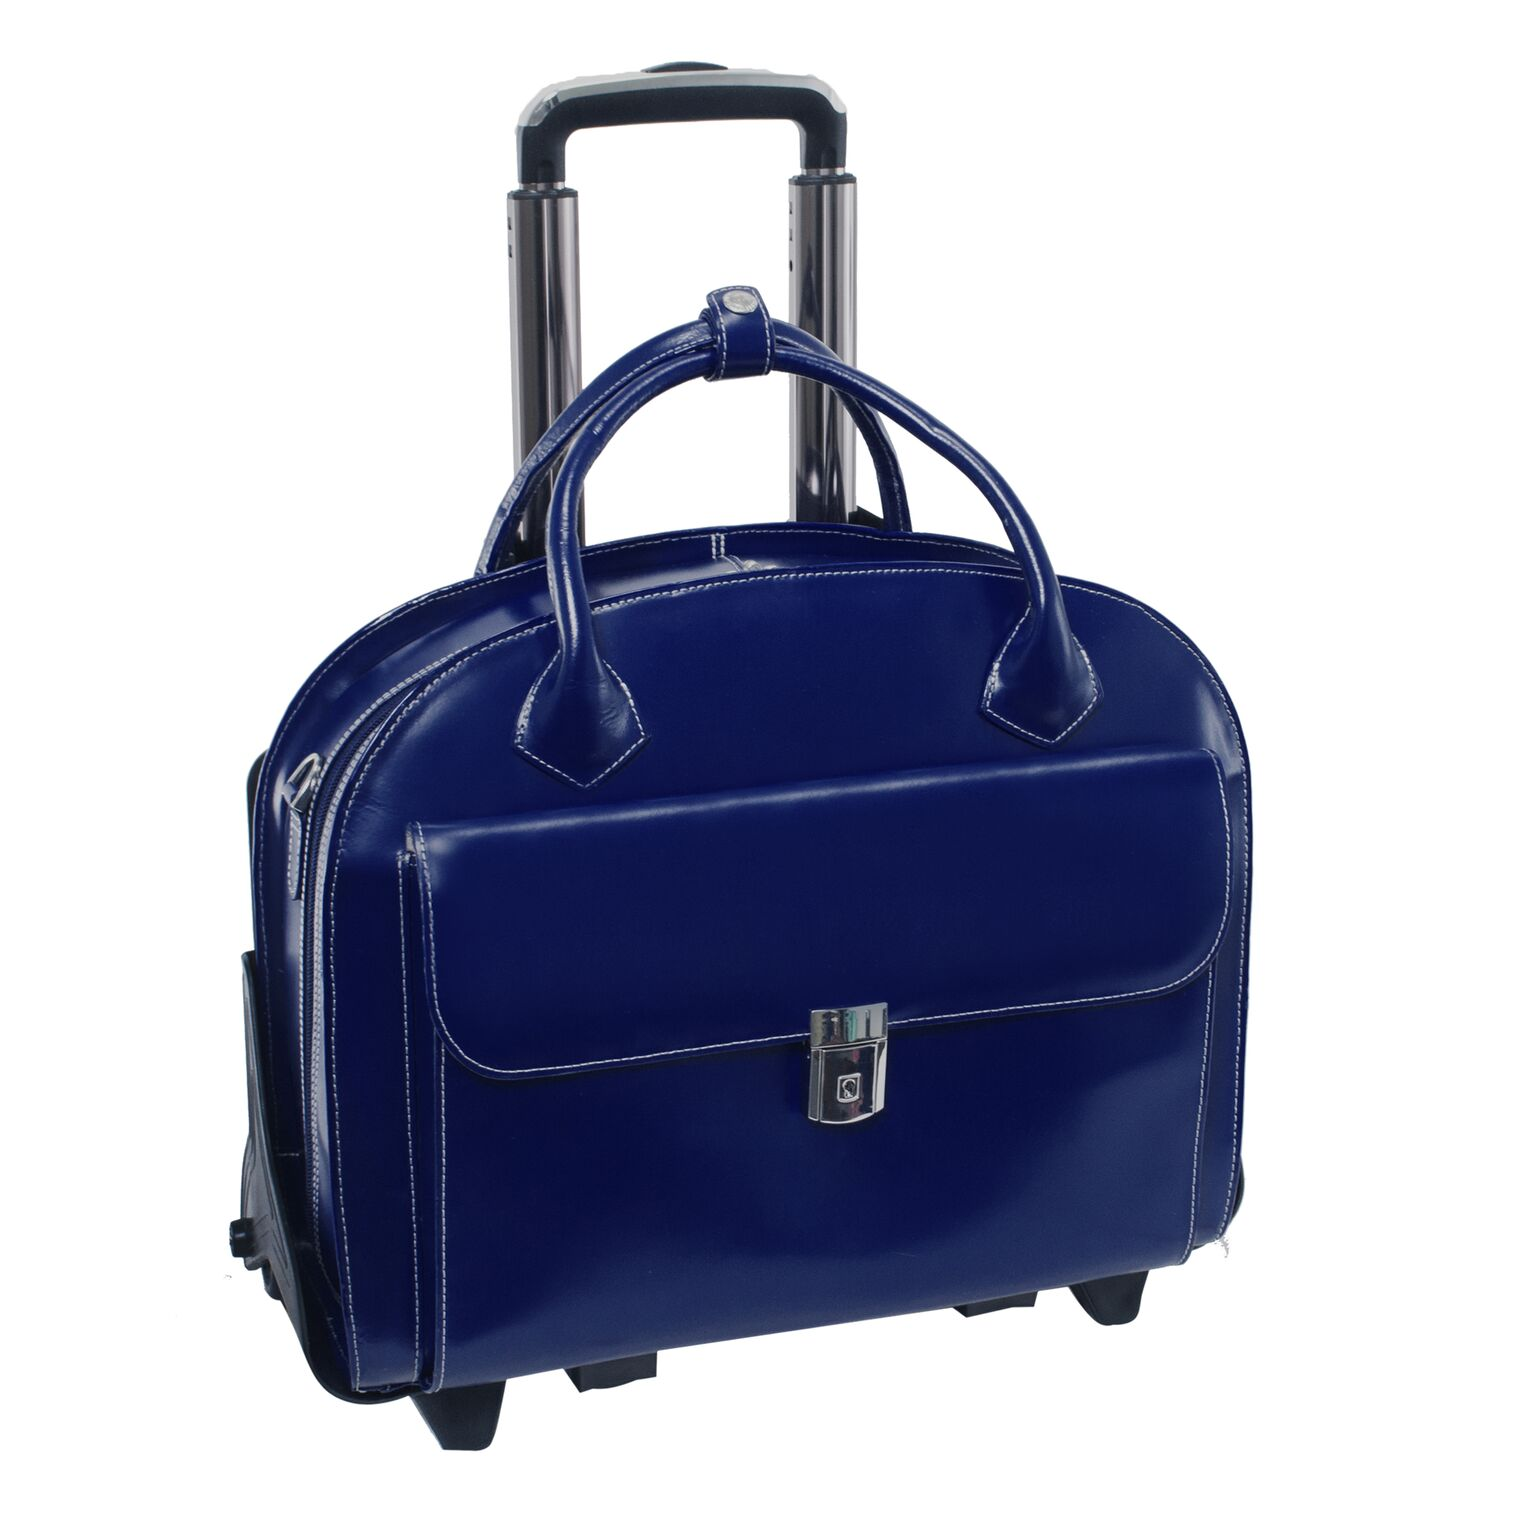 Mcklein USA 94367 Glen Ellyn W Series Leather Detachable-Wheeled Ladies Case with Removable Sleeve - Navy